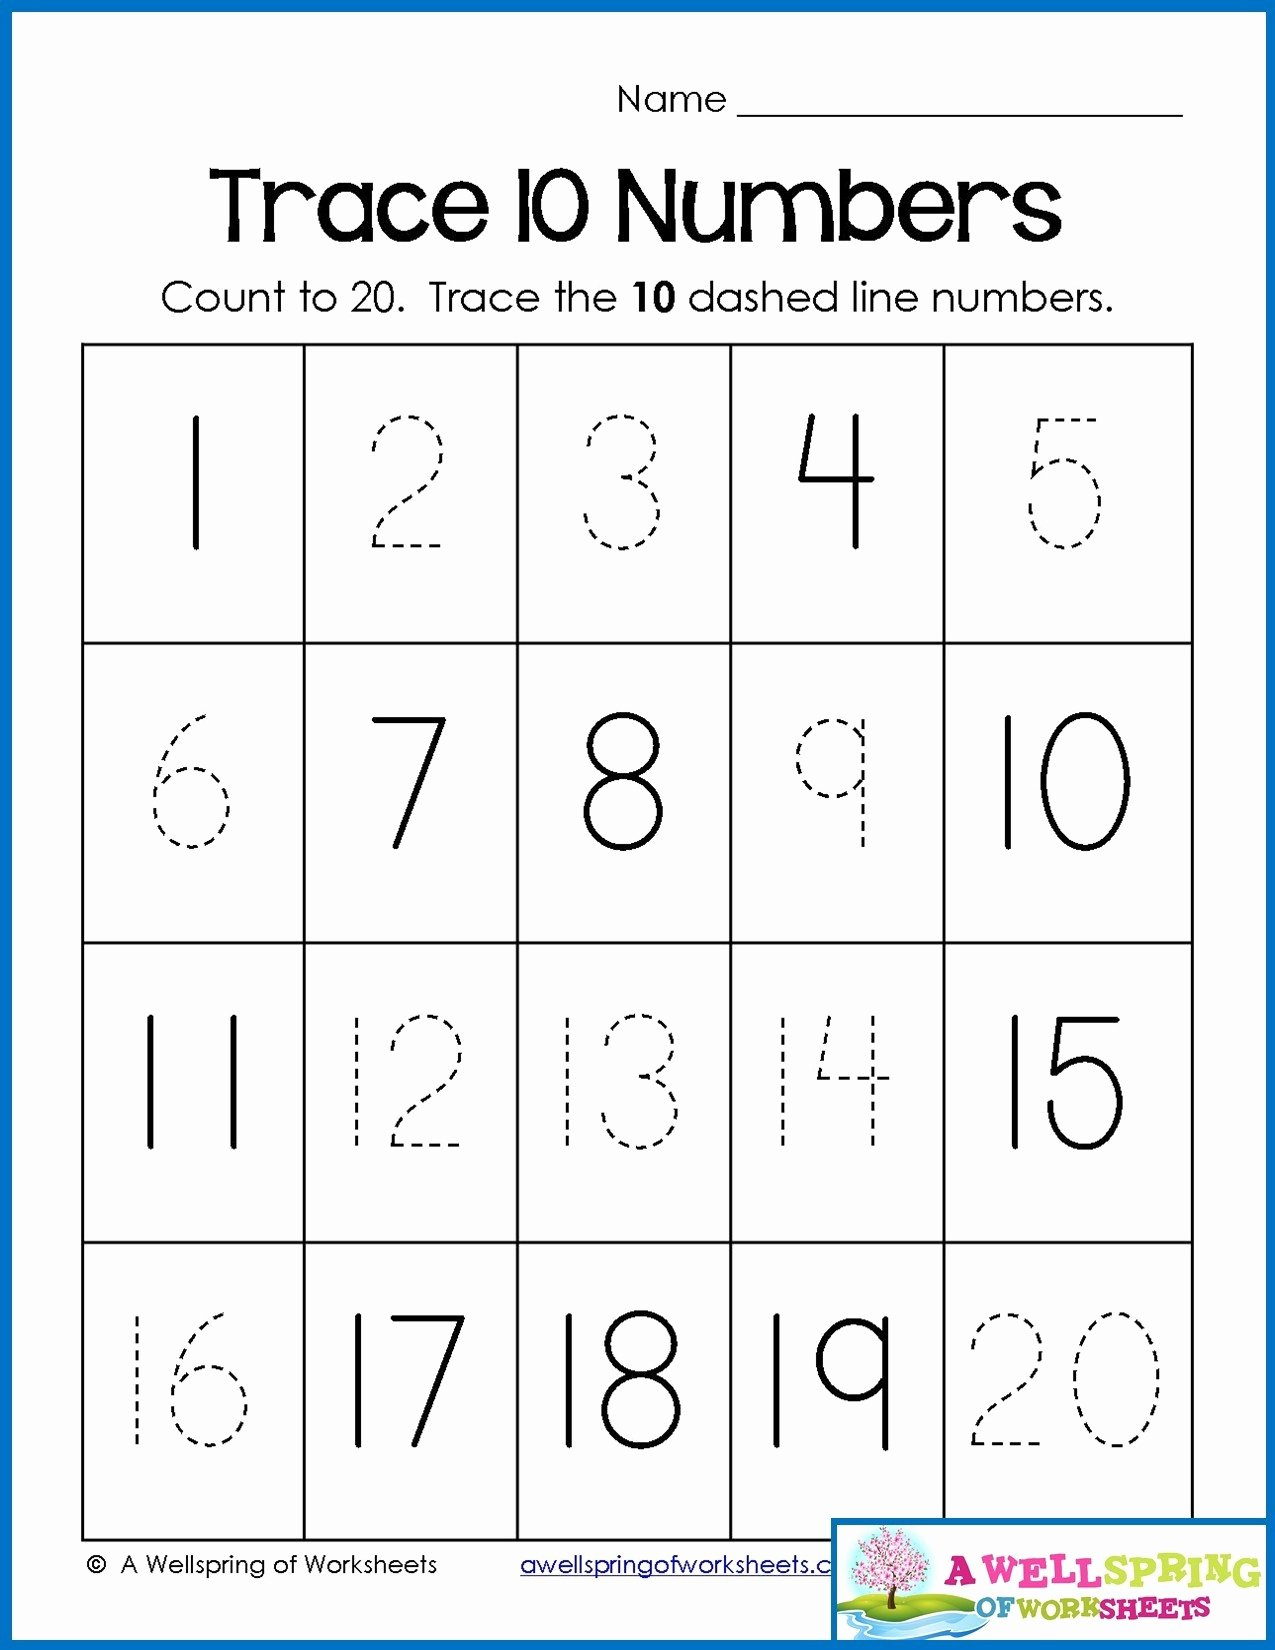 hight resolution of Printable Numbers Worksheets for Preschoolers Fresh Math Worksheet 45  Awesome Number Worksheets for Preschool – Printable Worksheets for Kids